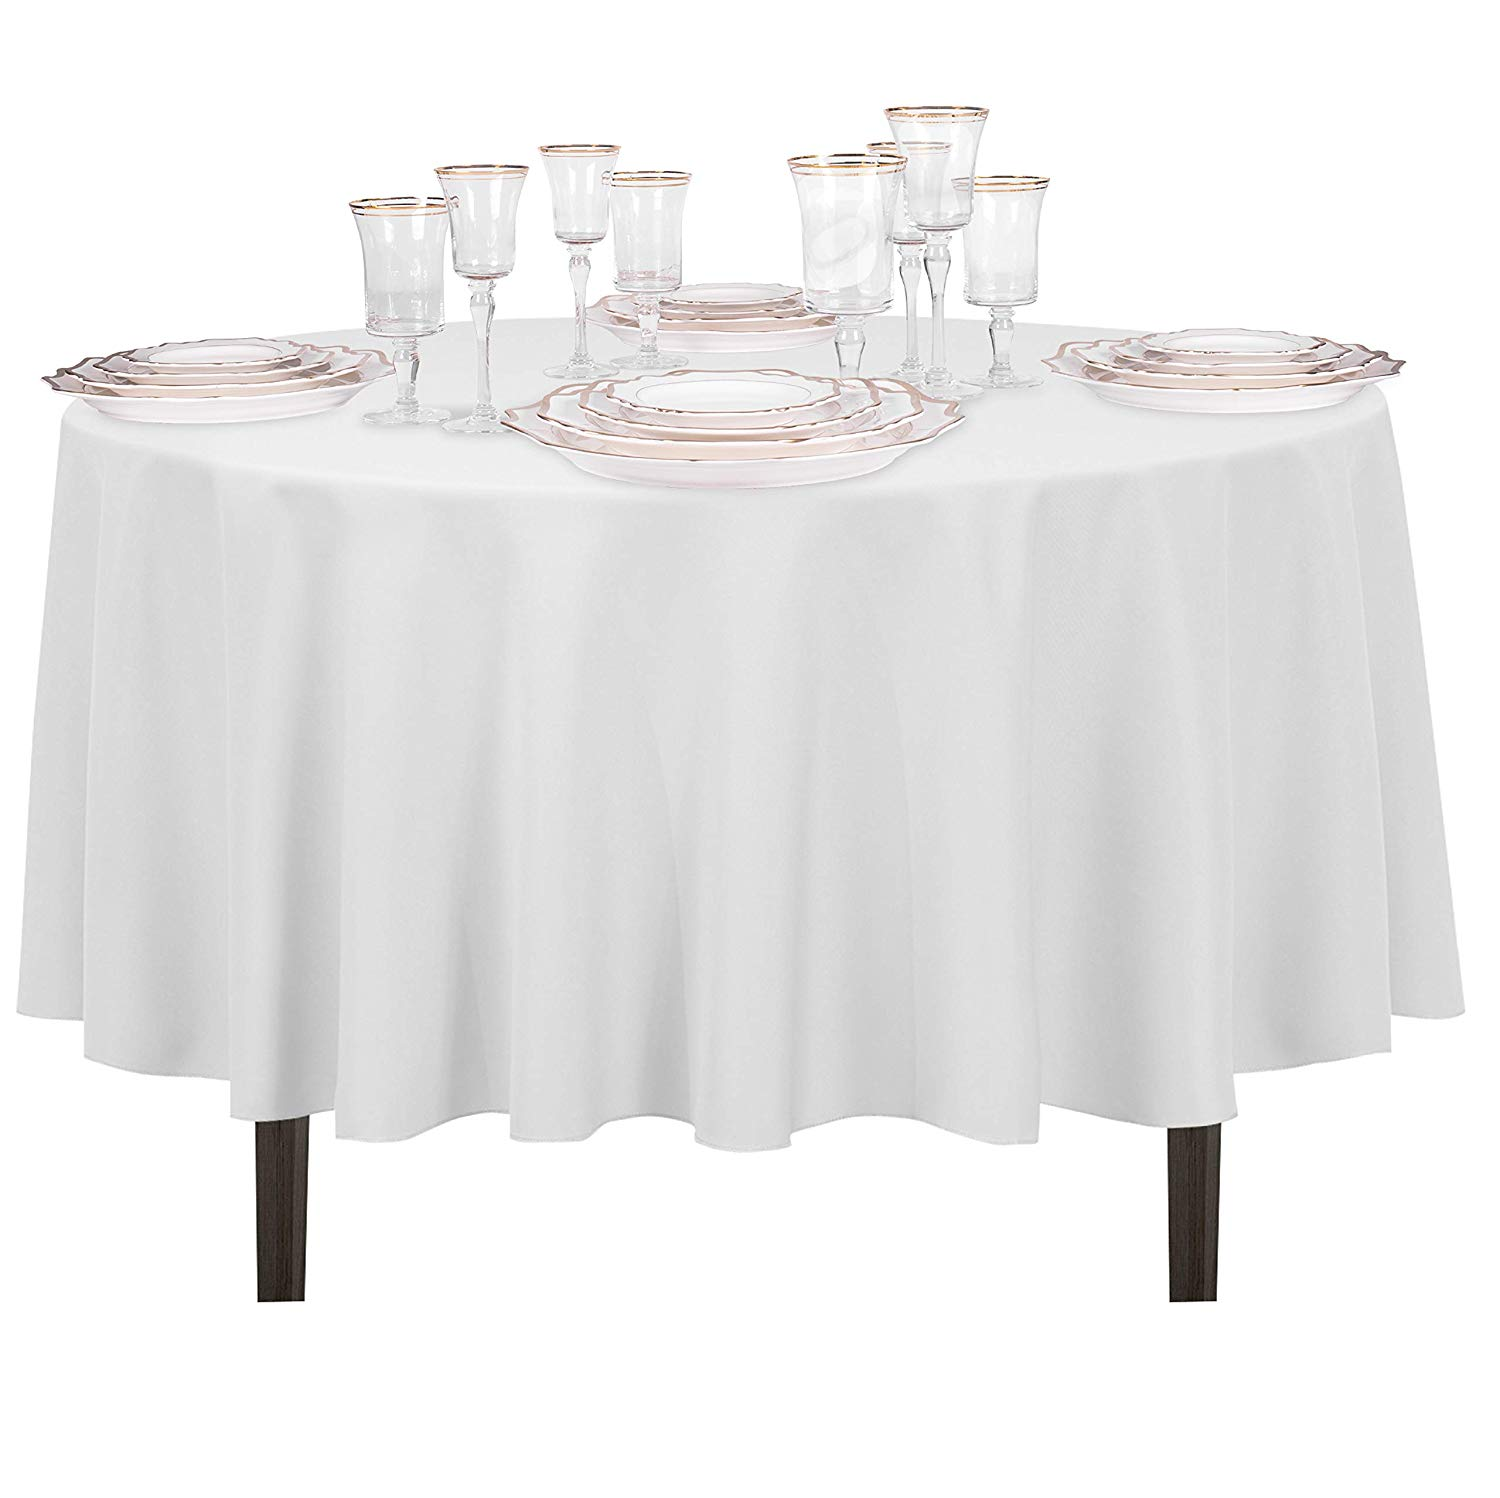 fascinating small round accent tablecloth responsive tweakers attributes wordpress amusing training powerpoint table kopen inch vivant latex format html tablespoon width